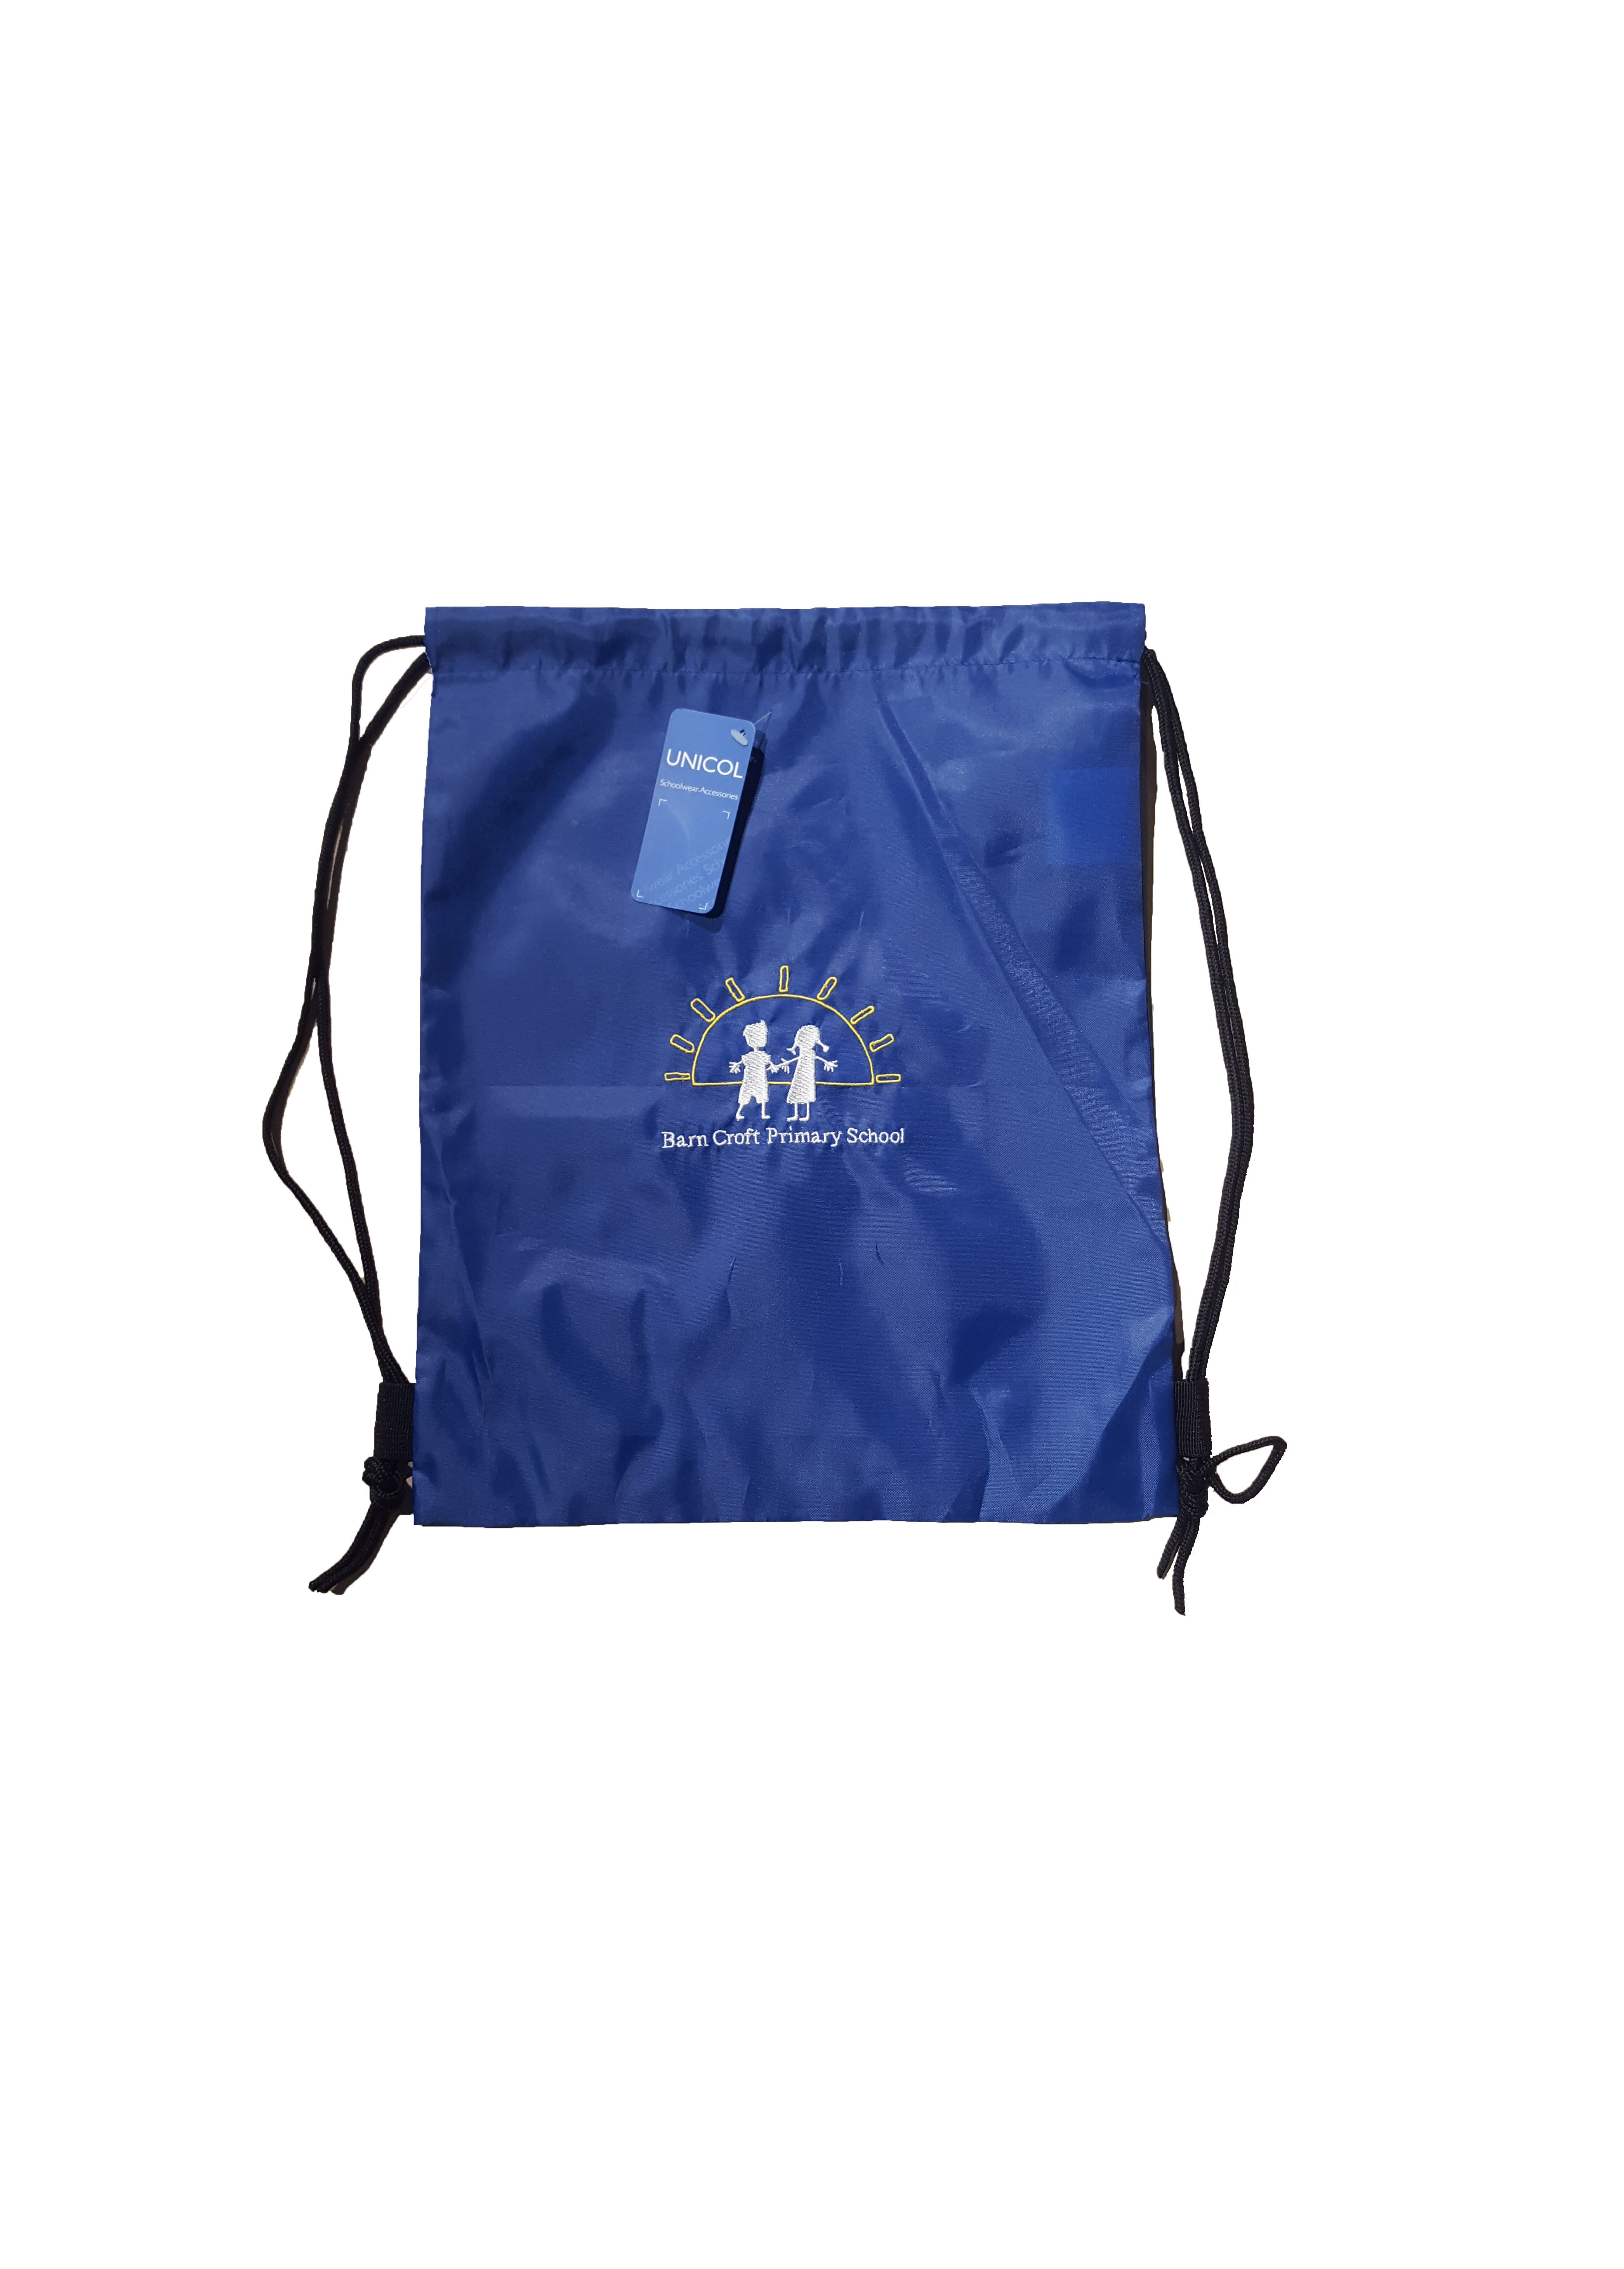 Barn Croft P.E bag